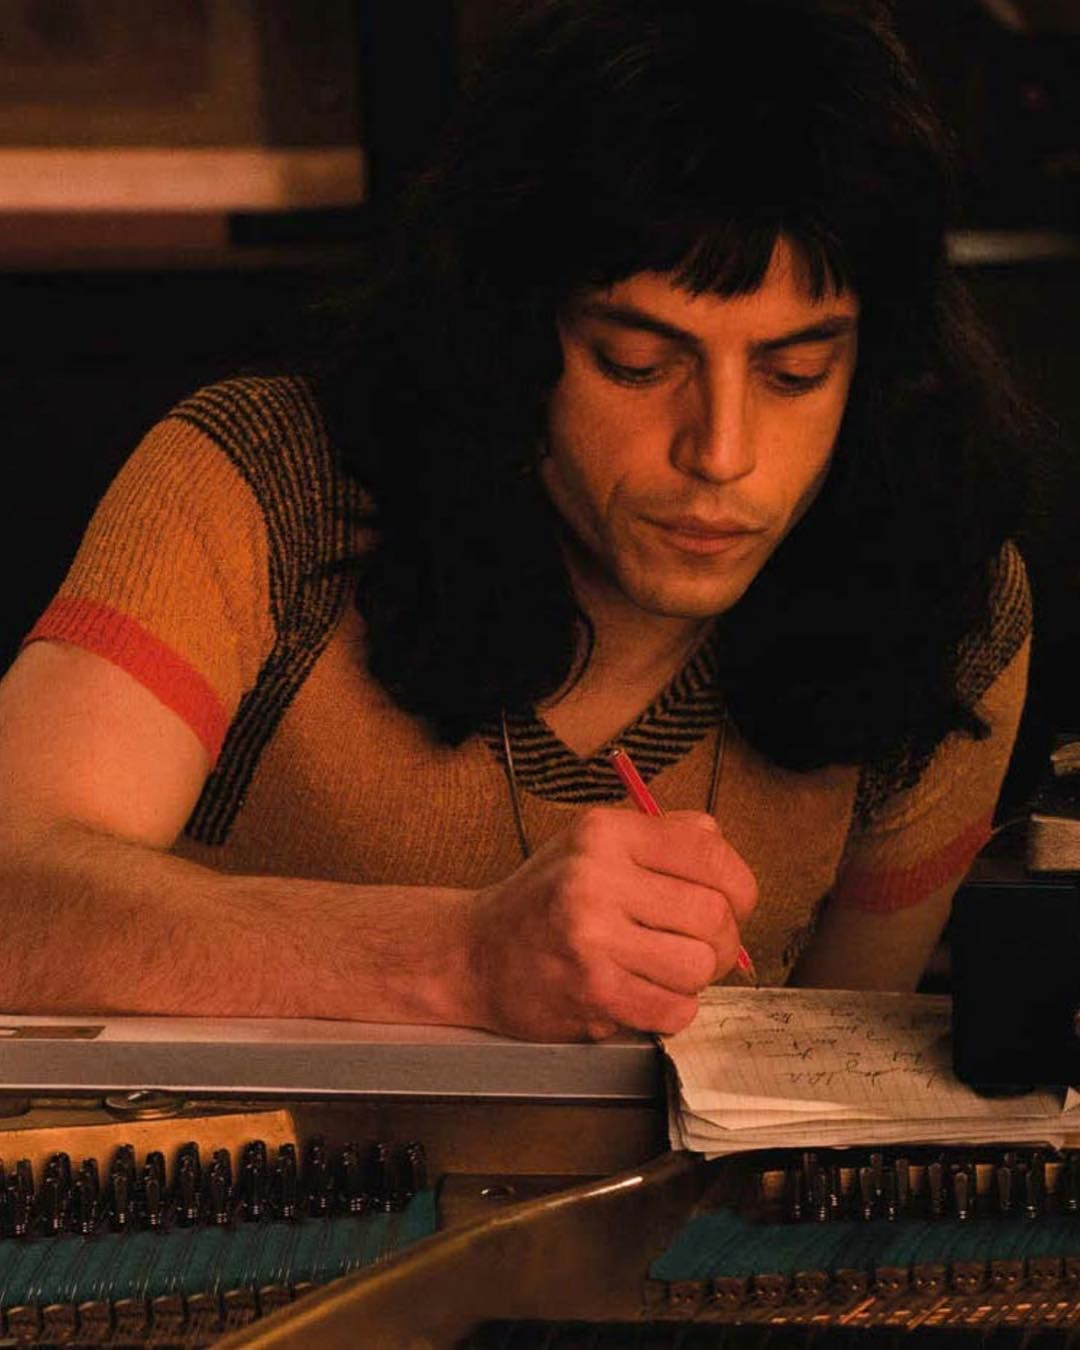 From The Bohemian Rhapsody Book Kindle Edition Many Thanks To Those Crediting Me In Reposts Much App Bohemian Rhapsody Queen Movie Rami Malek Freddie Mercury